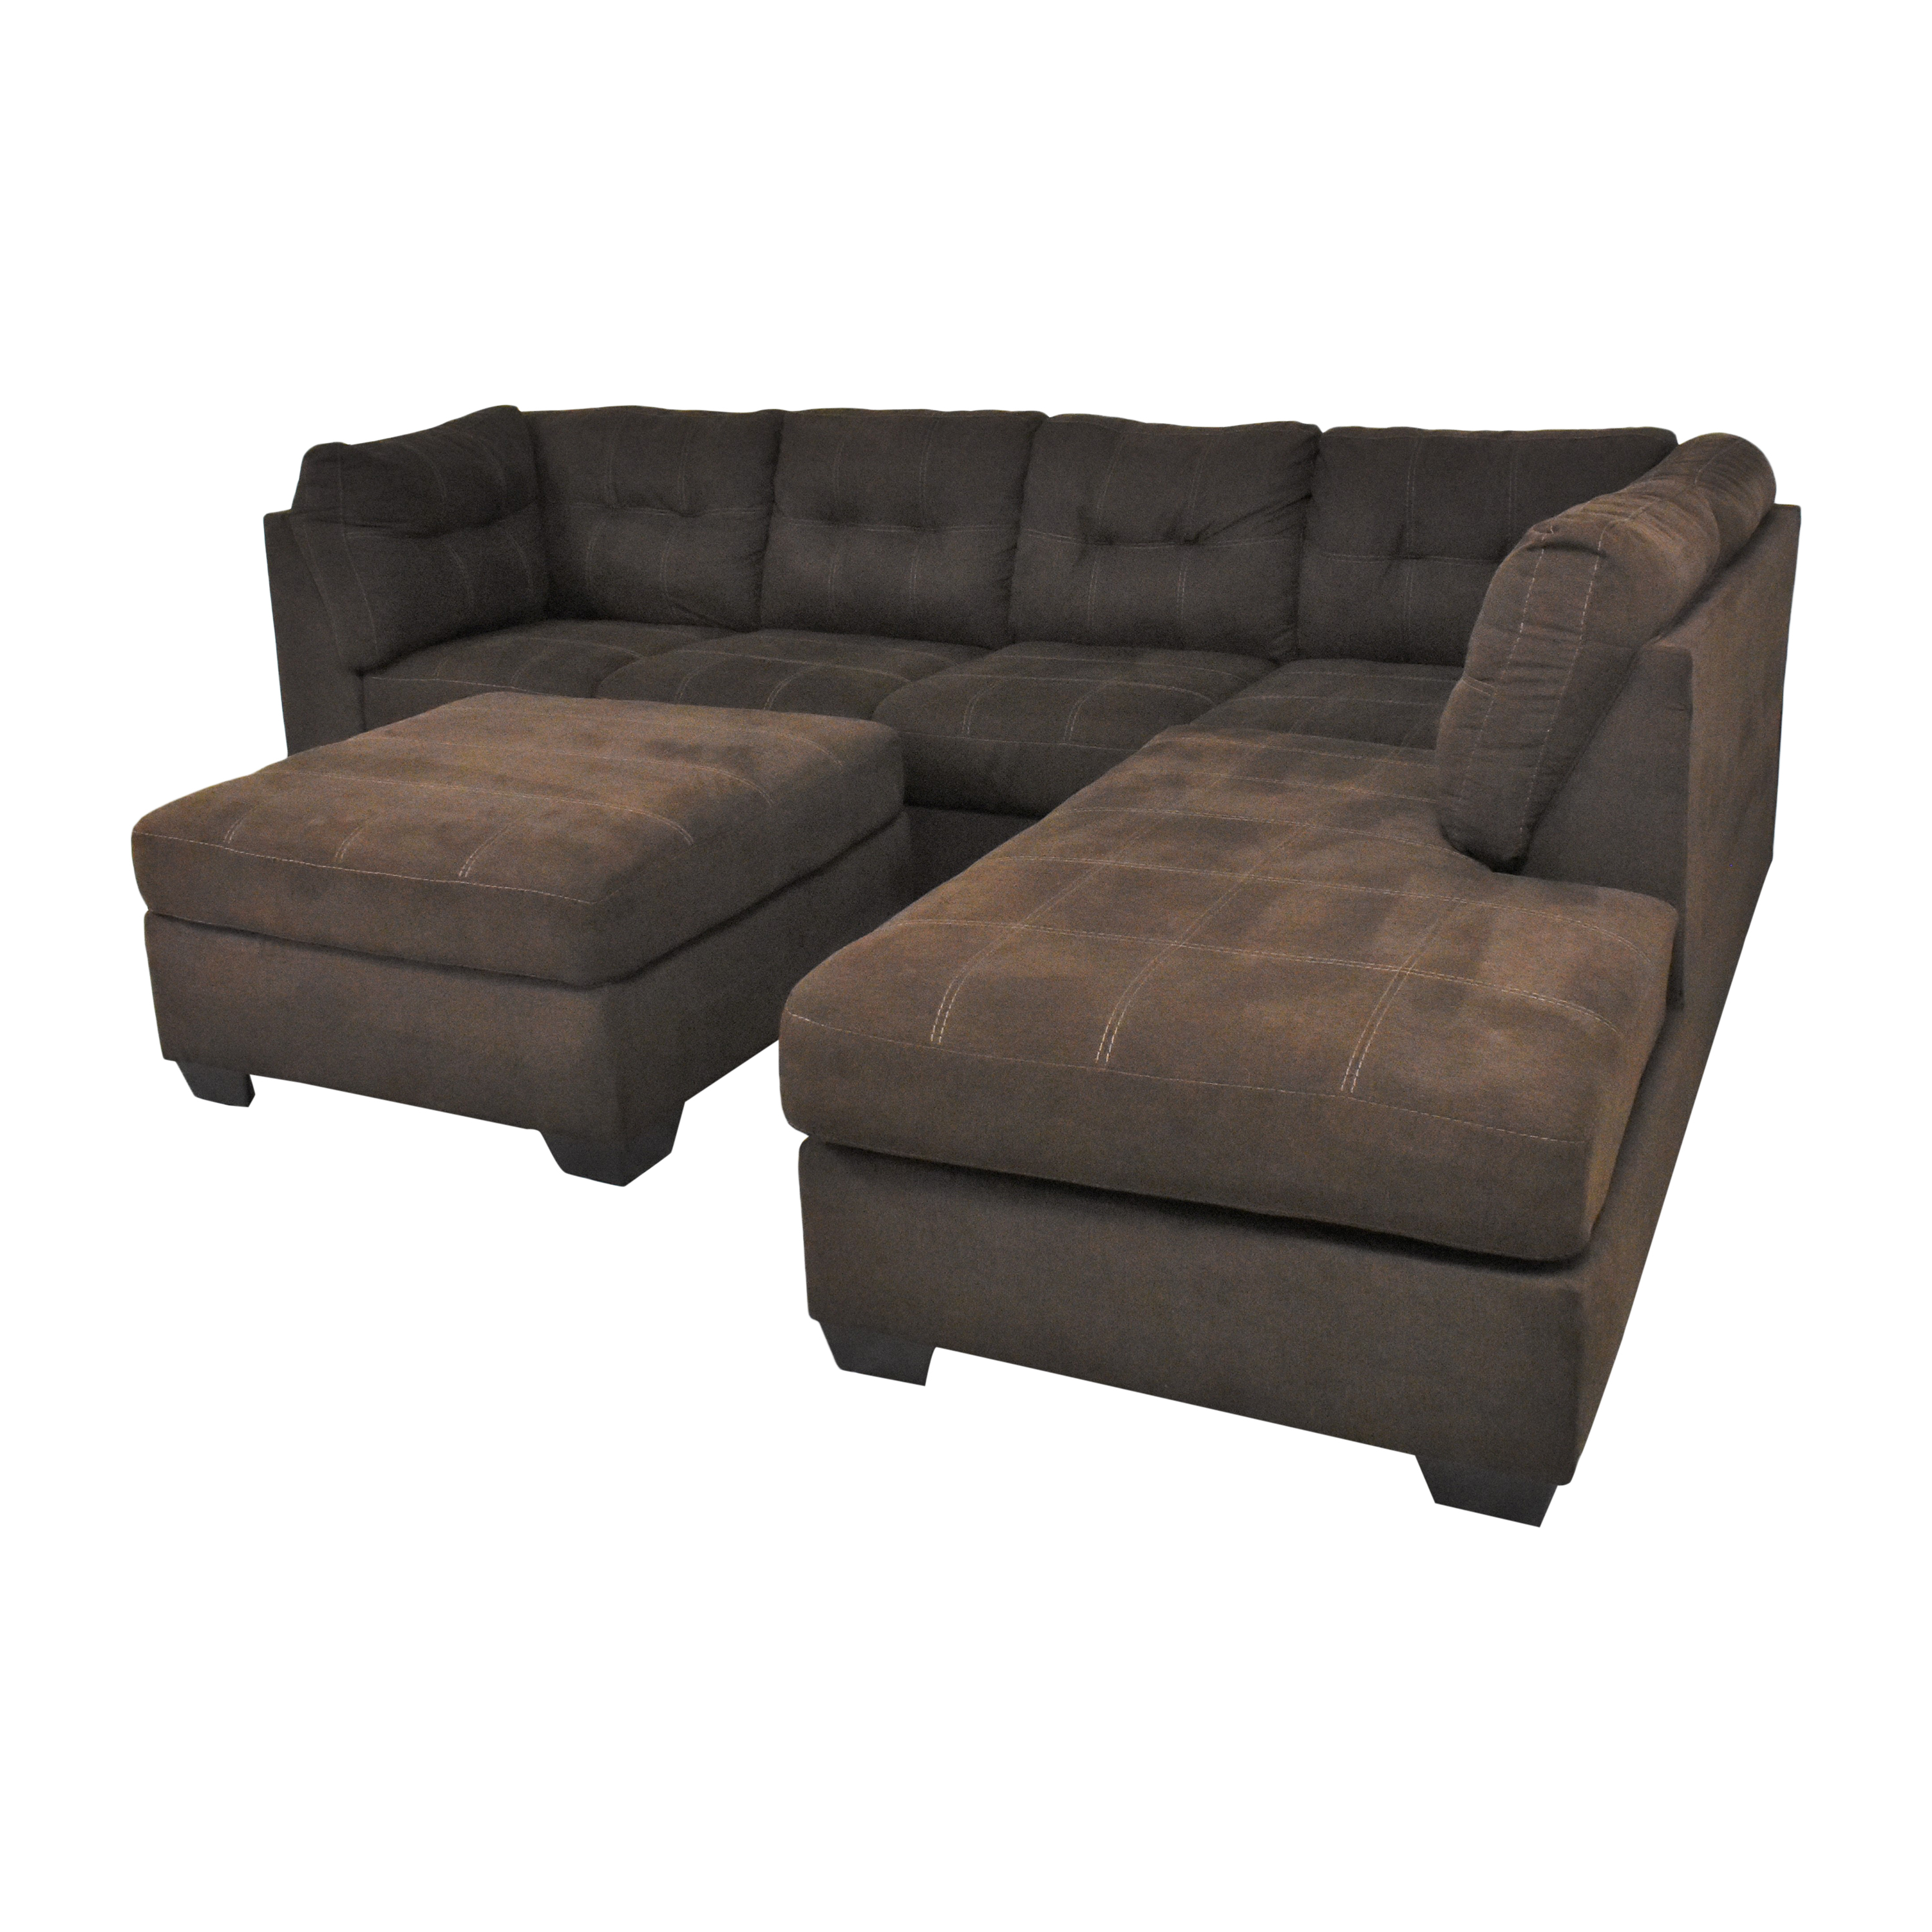 shop Ashley Furniture Pitkin Two-Piece Chaise Sectional with Ottoman Ashley Furniture Sofas